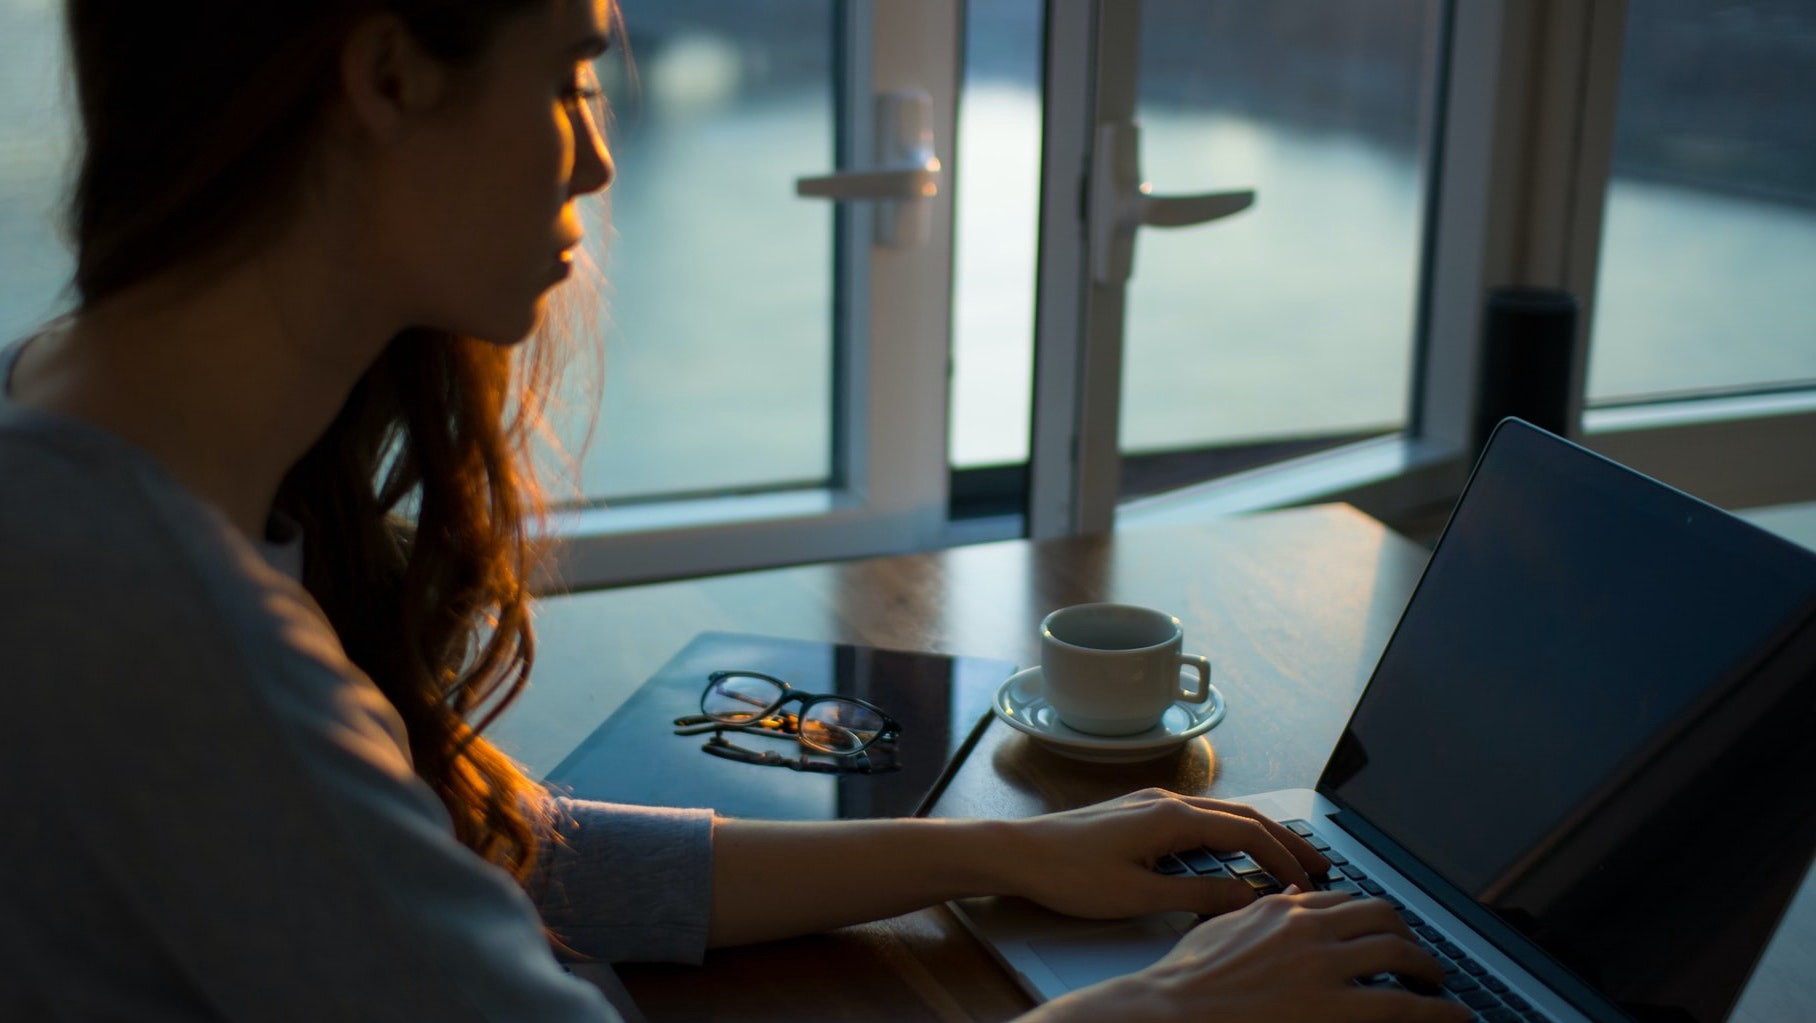 Woman in shadow in front of laptop